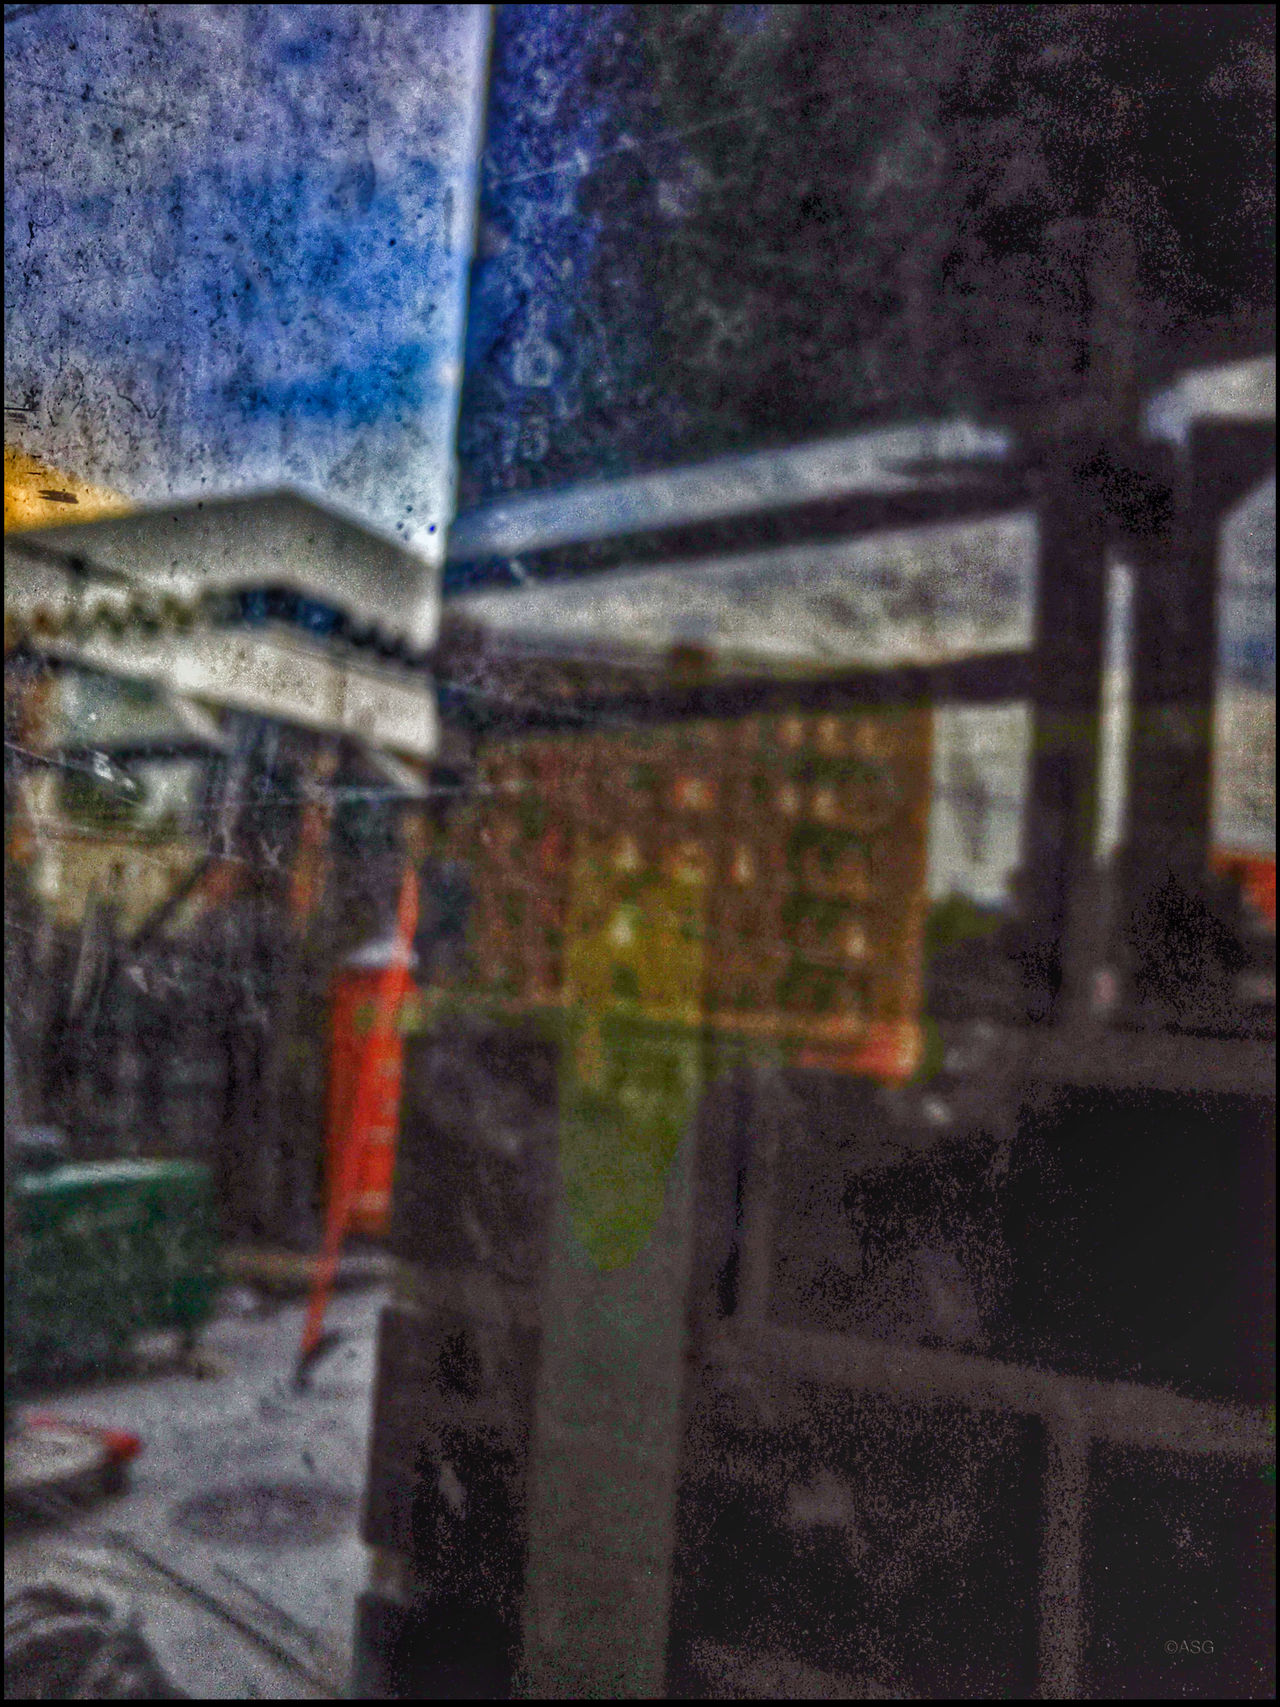 Construction site Reflection - 8/17/16 As I Sees It Color Pallete Colour Of Life, EyeEm StreetPhotography, NYC IPhone Creative Edits W/ Snapseed Malephotographerofthemonth Opportunistic Images On The Go Scratched Up Plastic Reflection The Journey Is The Destination